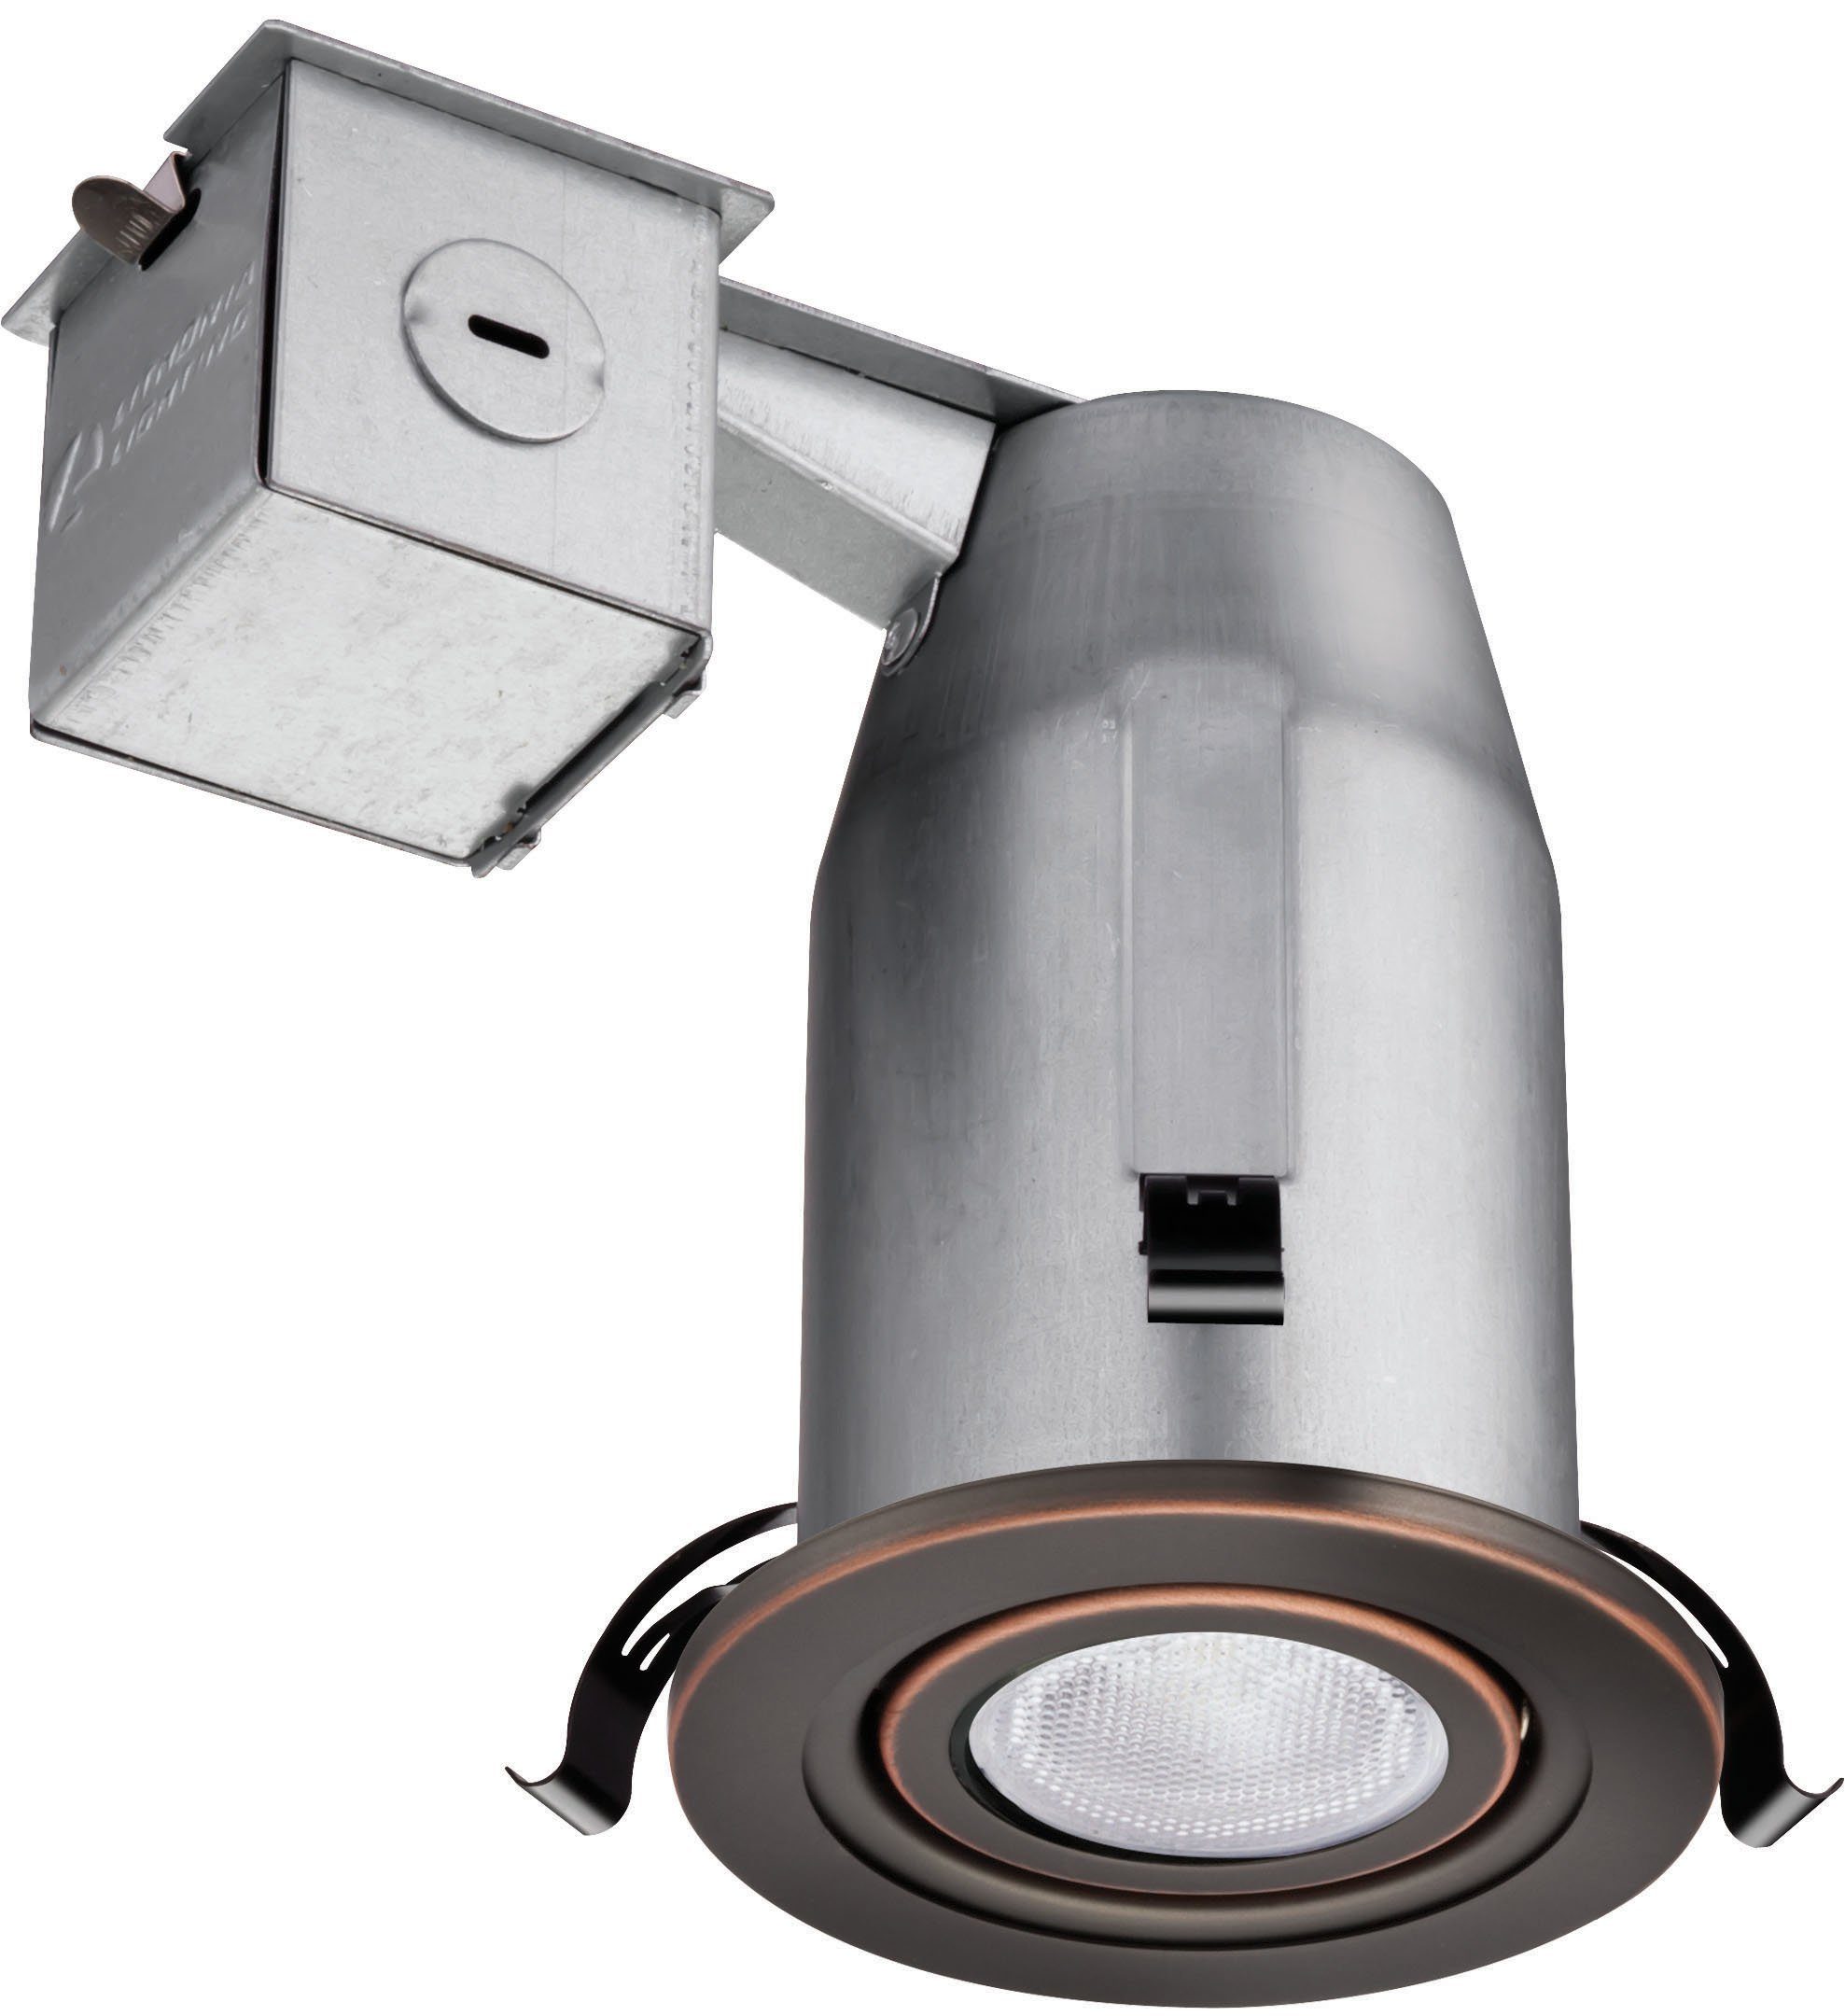 Lithonia Lighting LK3GORB LED LPI M6 3 Inch Gimbal Kit with LED Lamp Included in Bronze